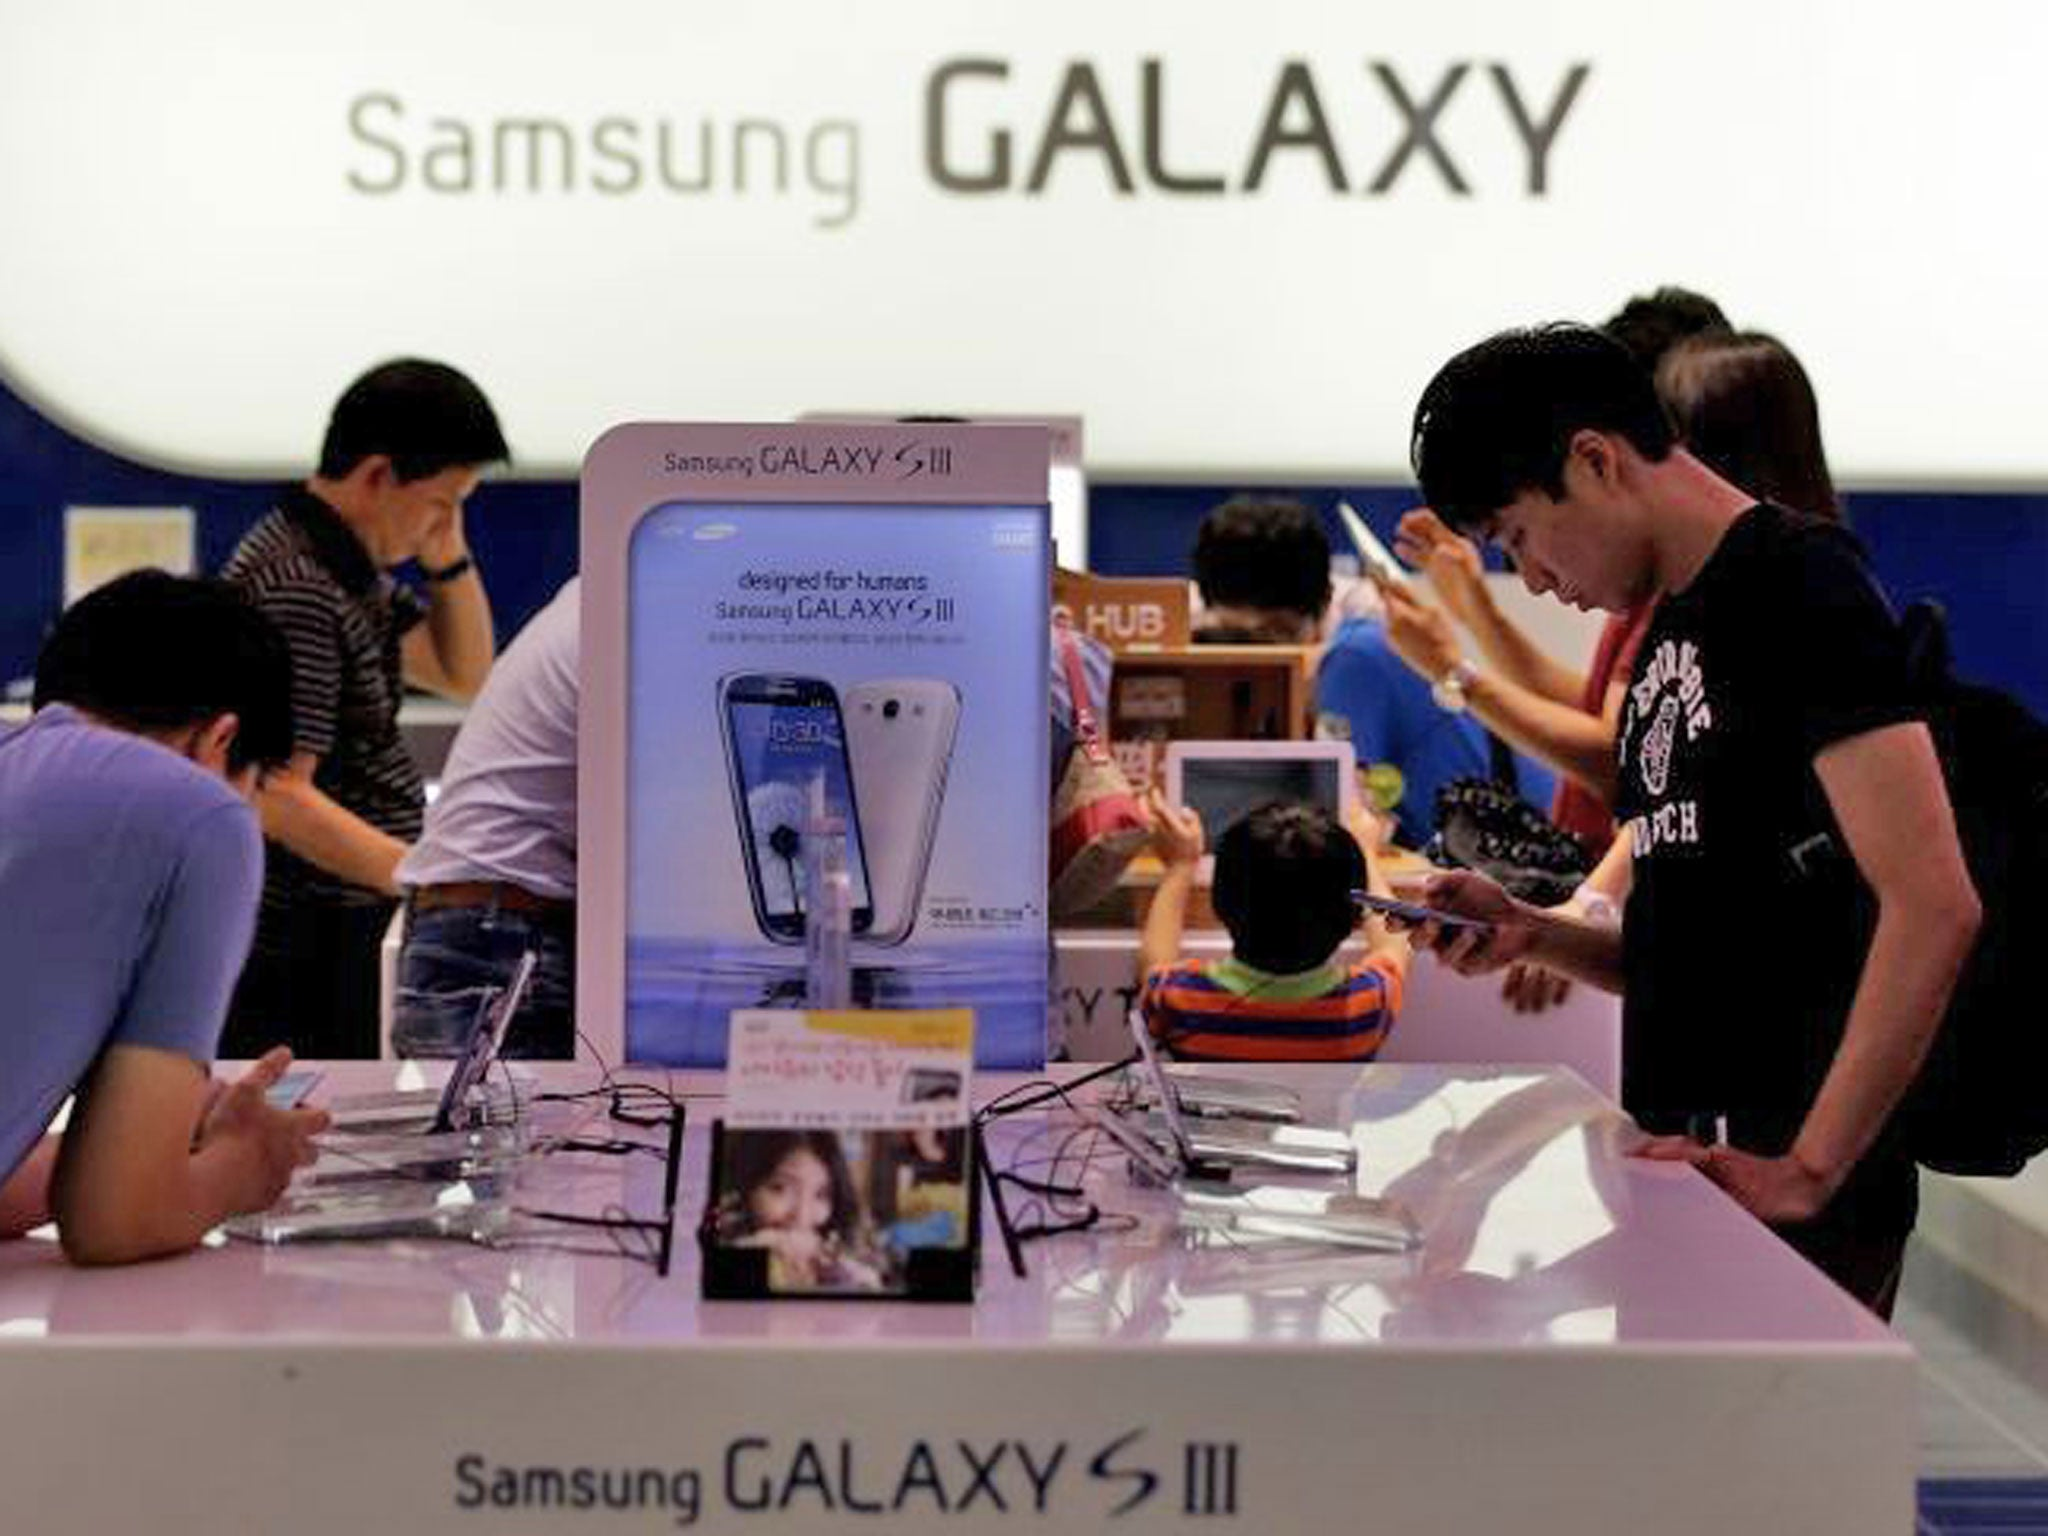 Tax Evasion Bribery And Price Fixing How Samsung Became The Giant